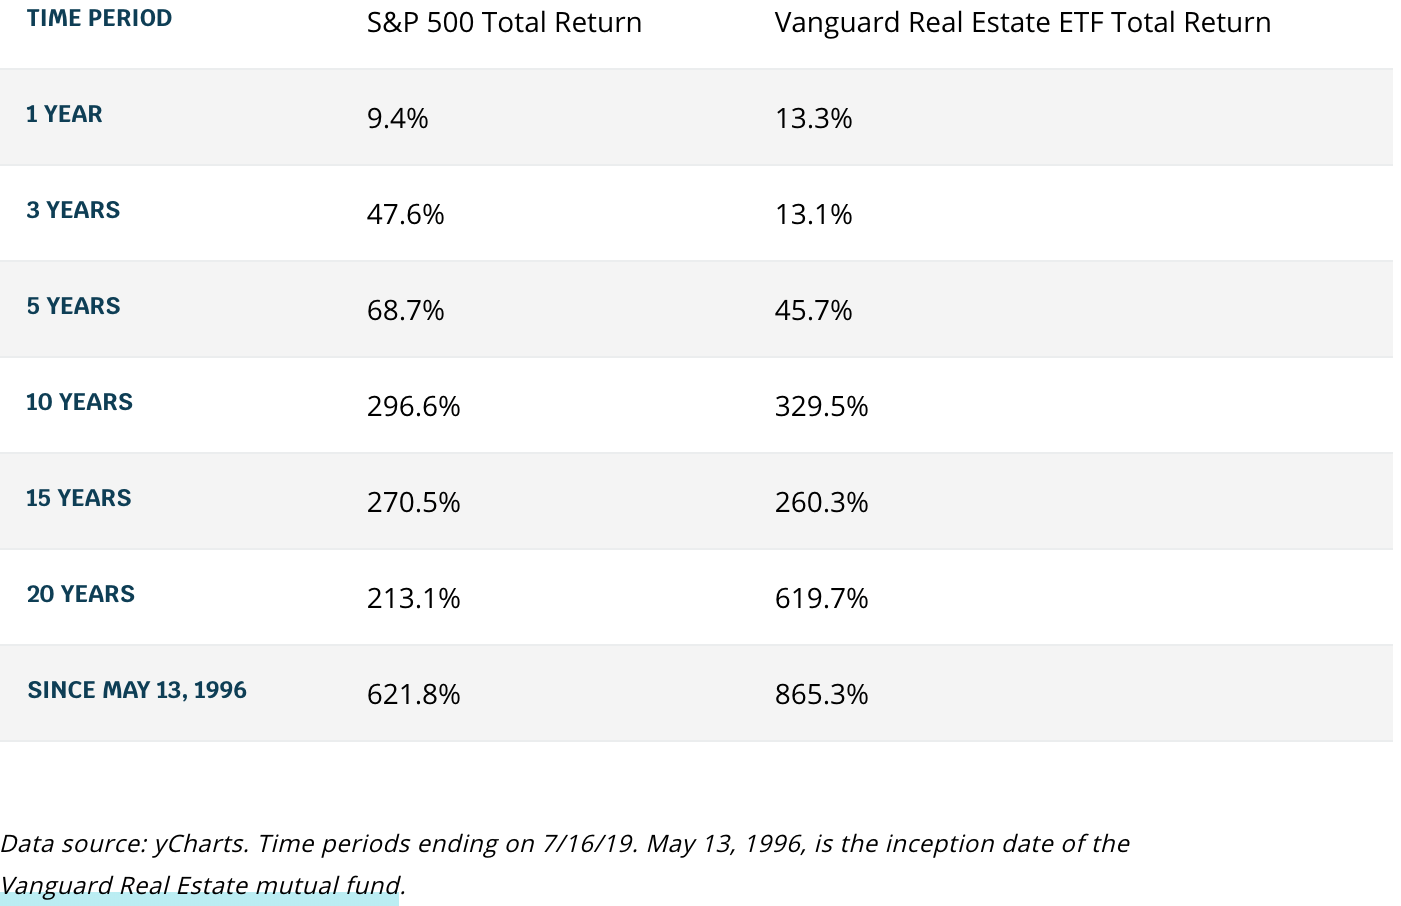 S&P 500 total return versus Vanguard Real Estate ETF total return